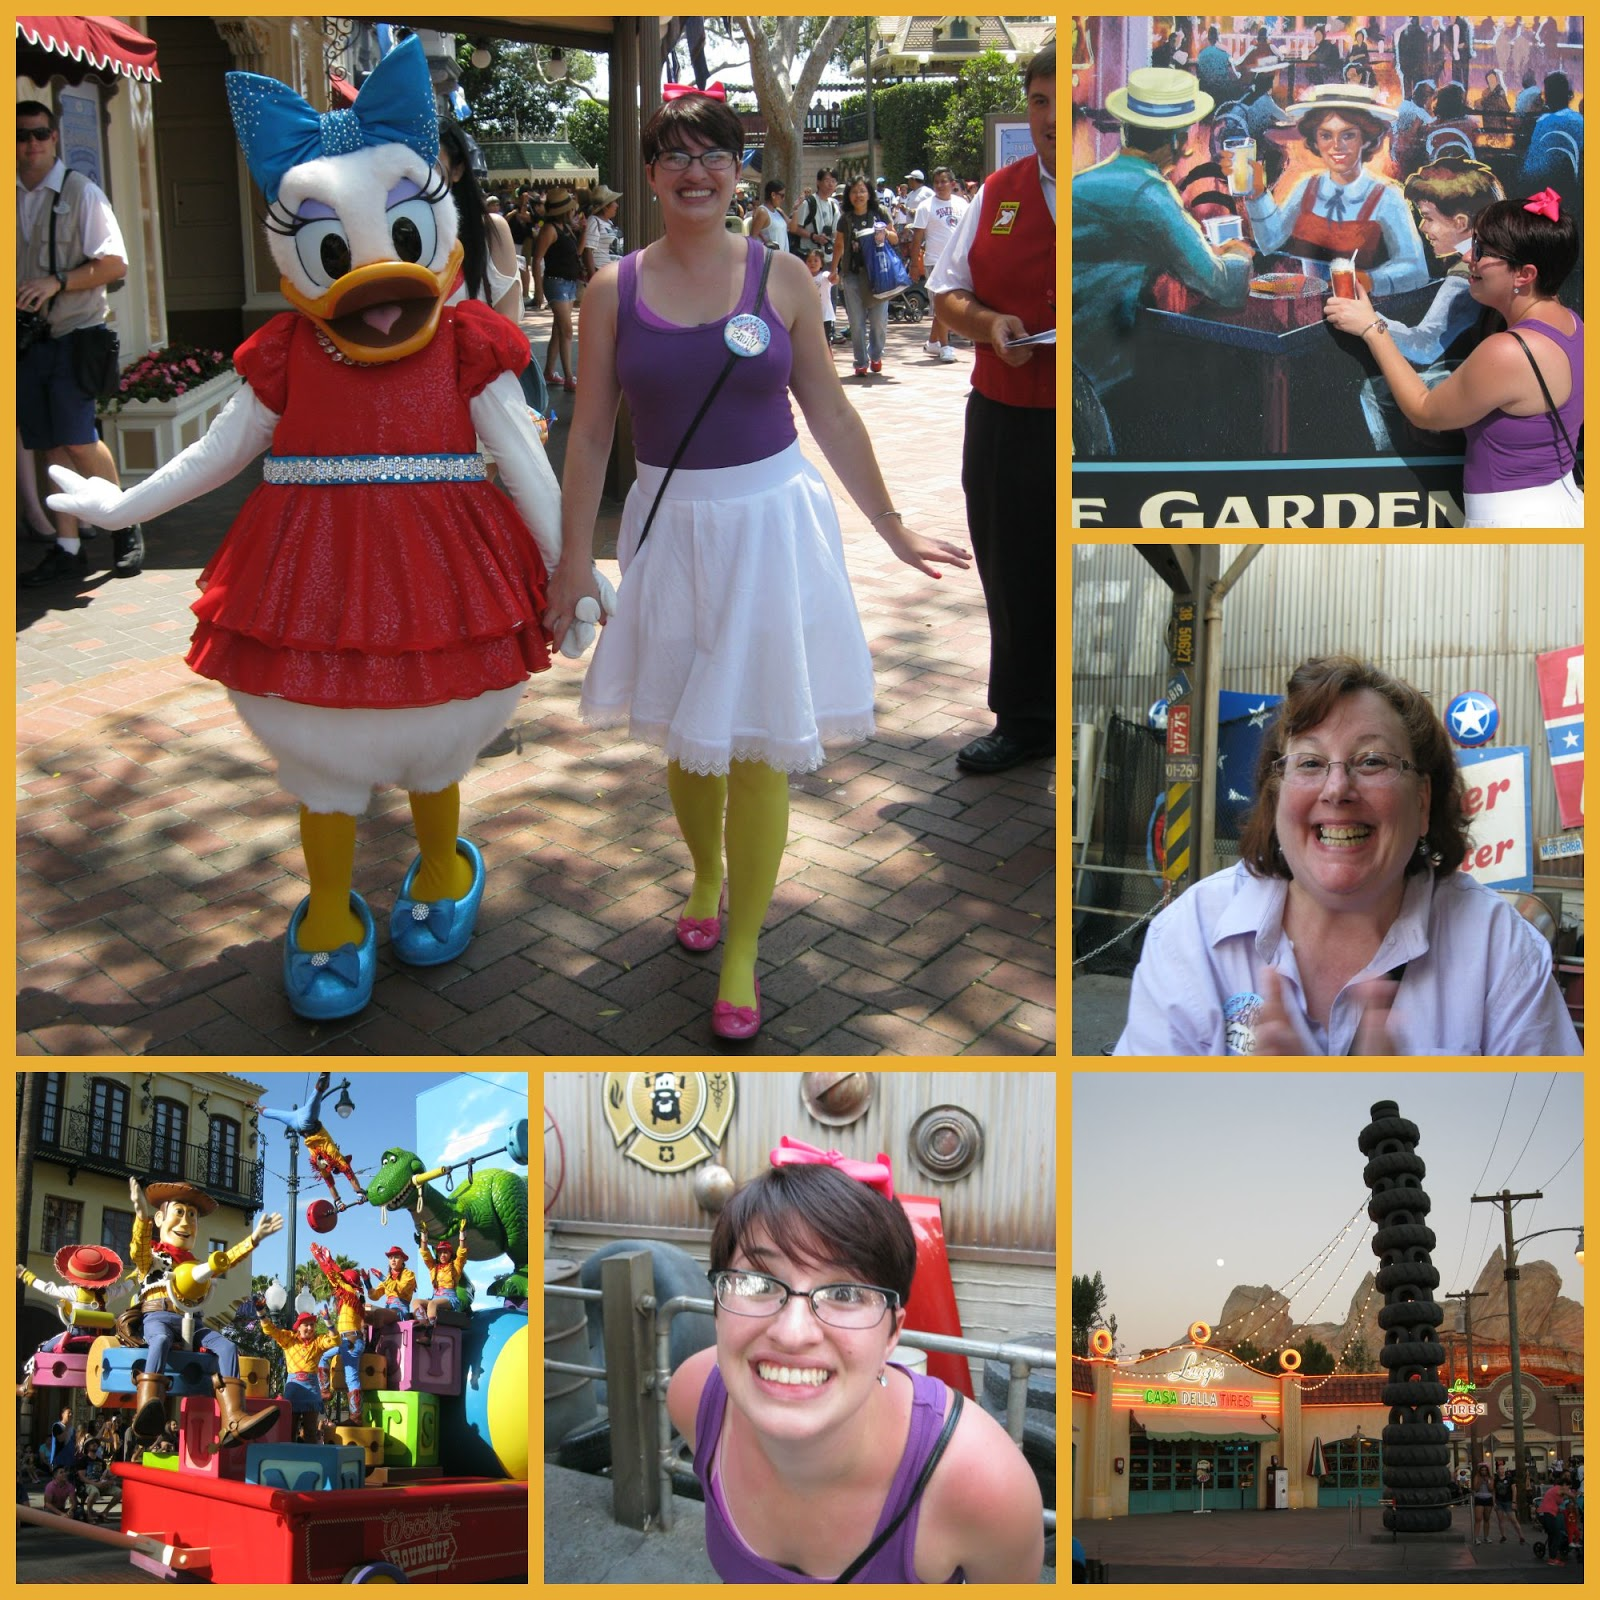 Daisy Duck Took Hold Of Em's Hand And They Sashayed Down Main Street Do  You See It? Em Is Dressed Like Daisy Duck! We Wandered About California  Adventure